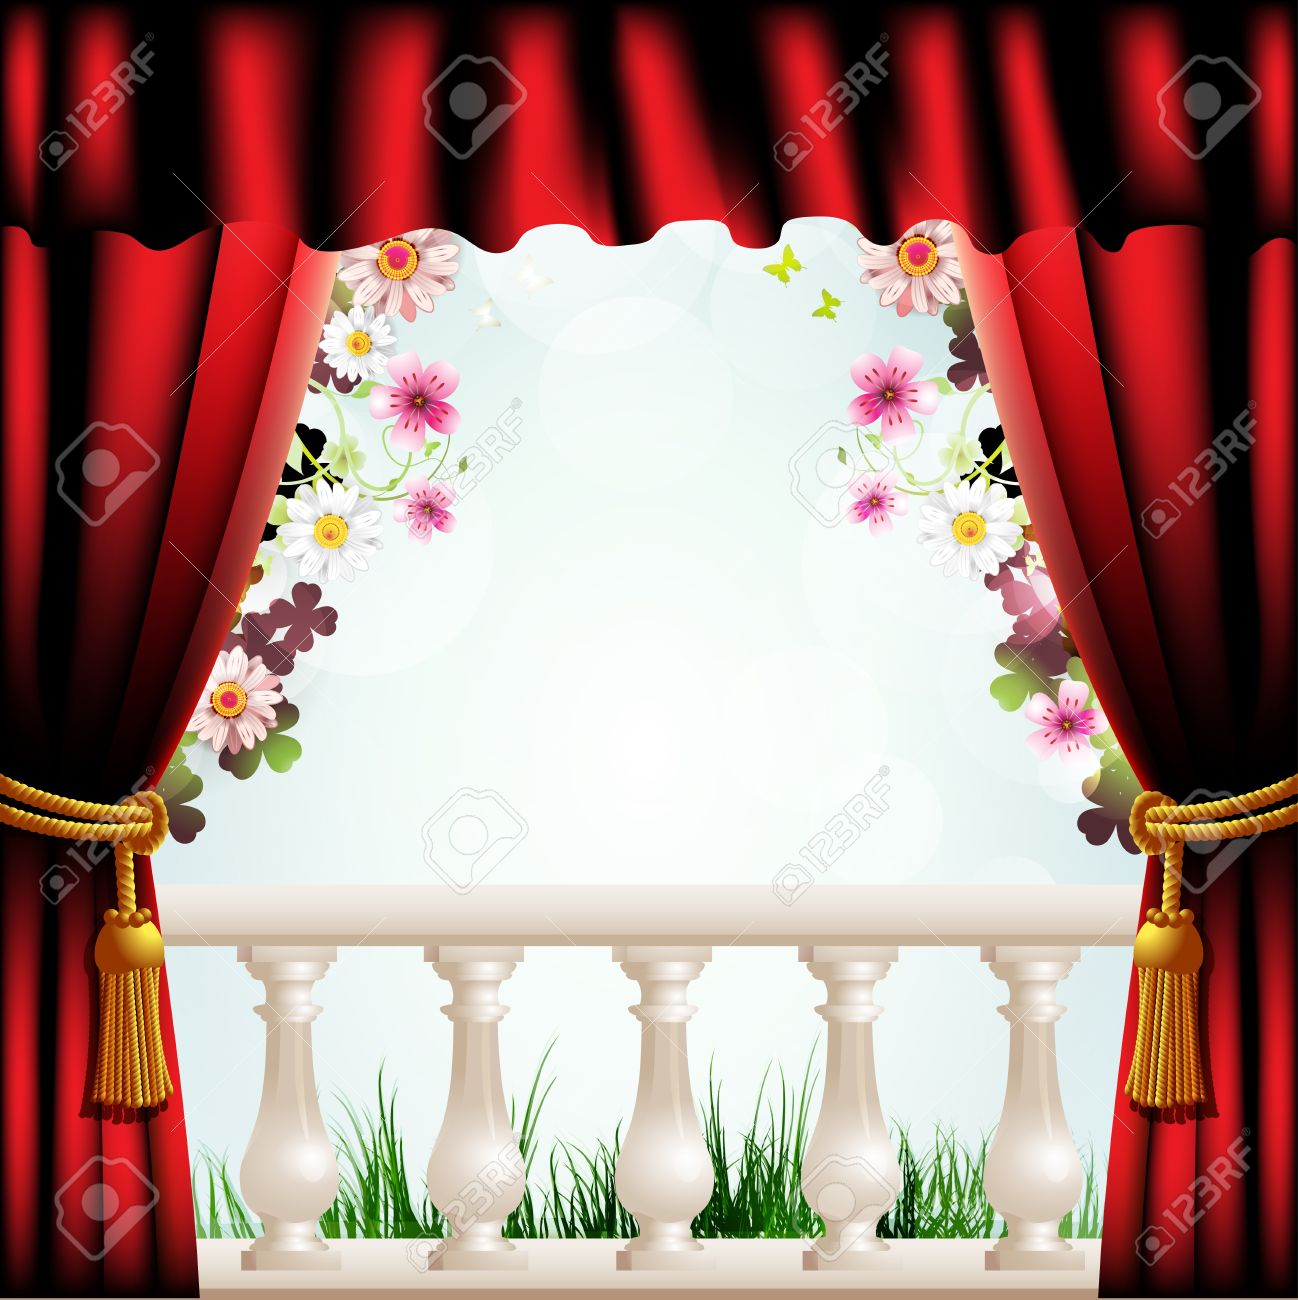 Railing With Columns And Red Curtain Royalty Free Cliparts ...